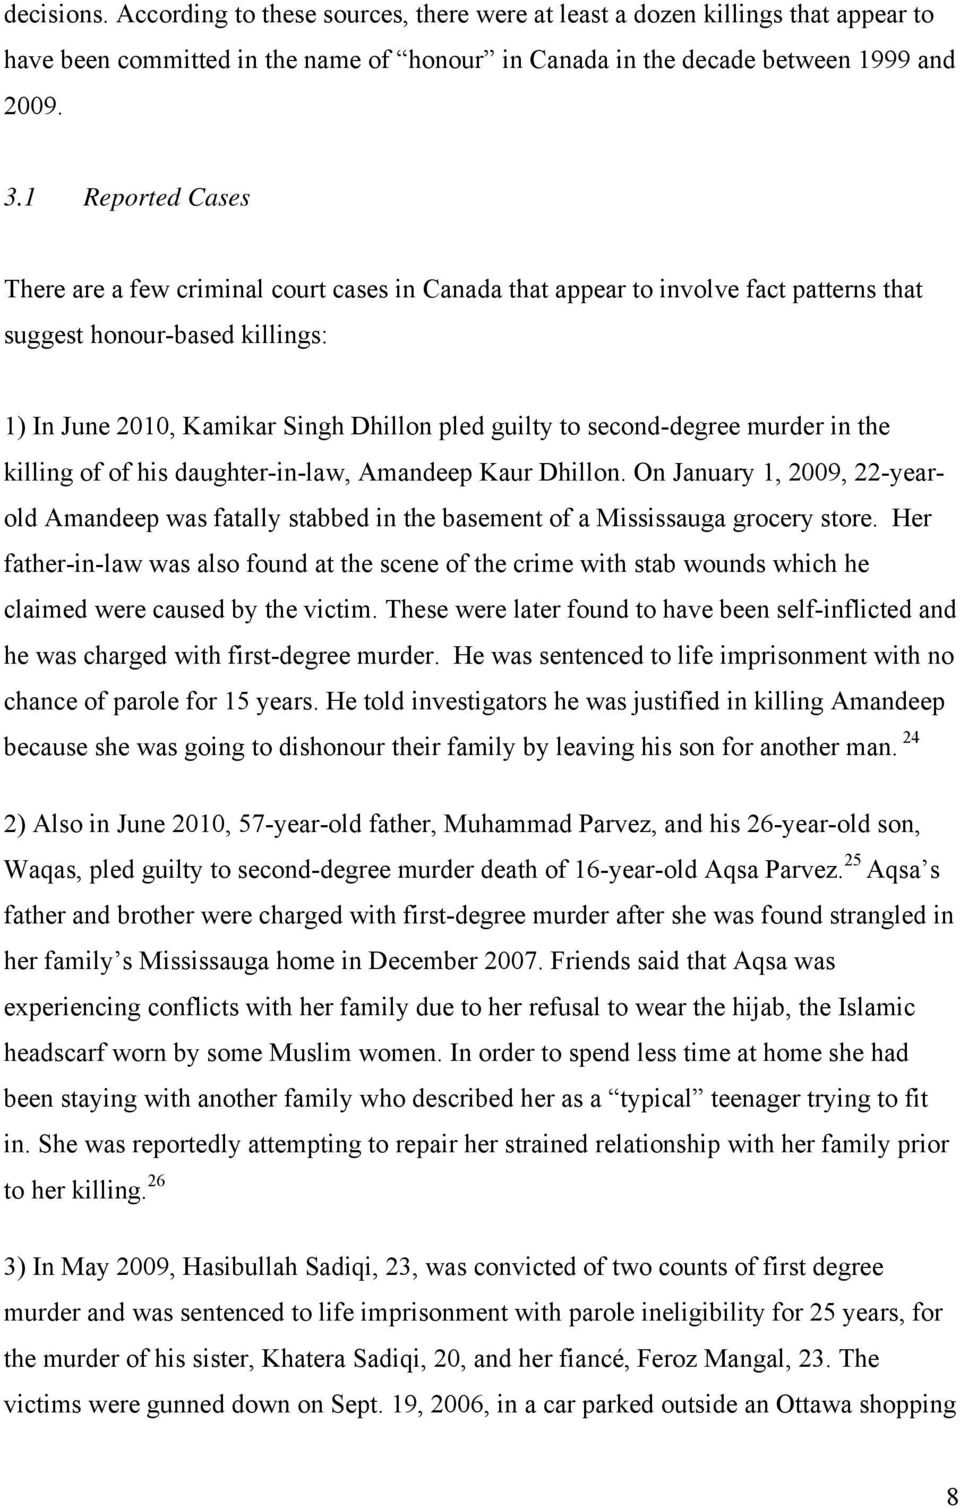 second-degree murder in the killing of of his daughter-in-law, Amandeep Kaur Dhillon. On January 1, 2009, 22-yearold Amandeep was fatally stabbed in the basement of a Mississauga grocery store.